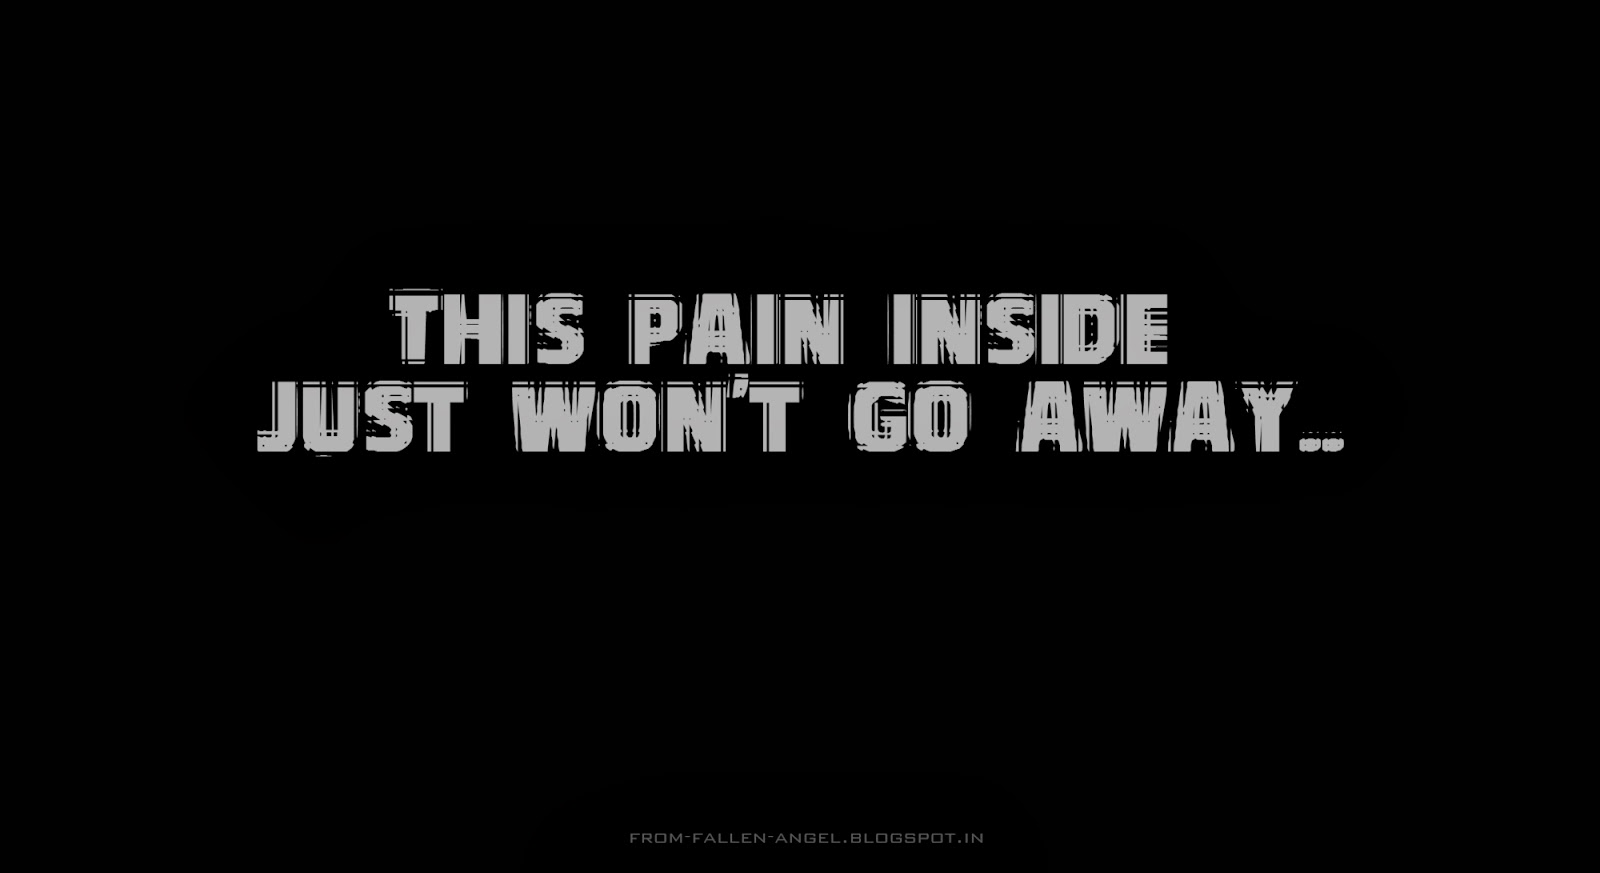 This pain inside just won't go away